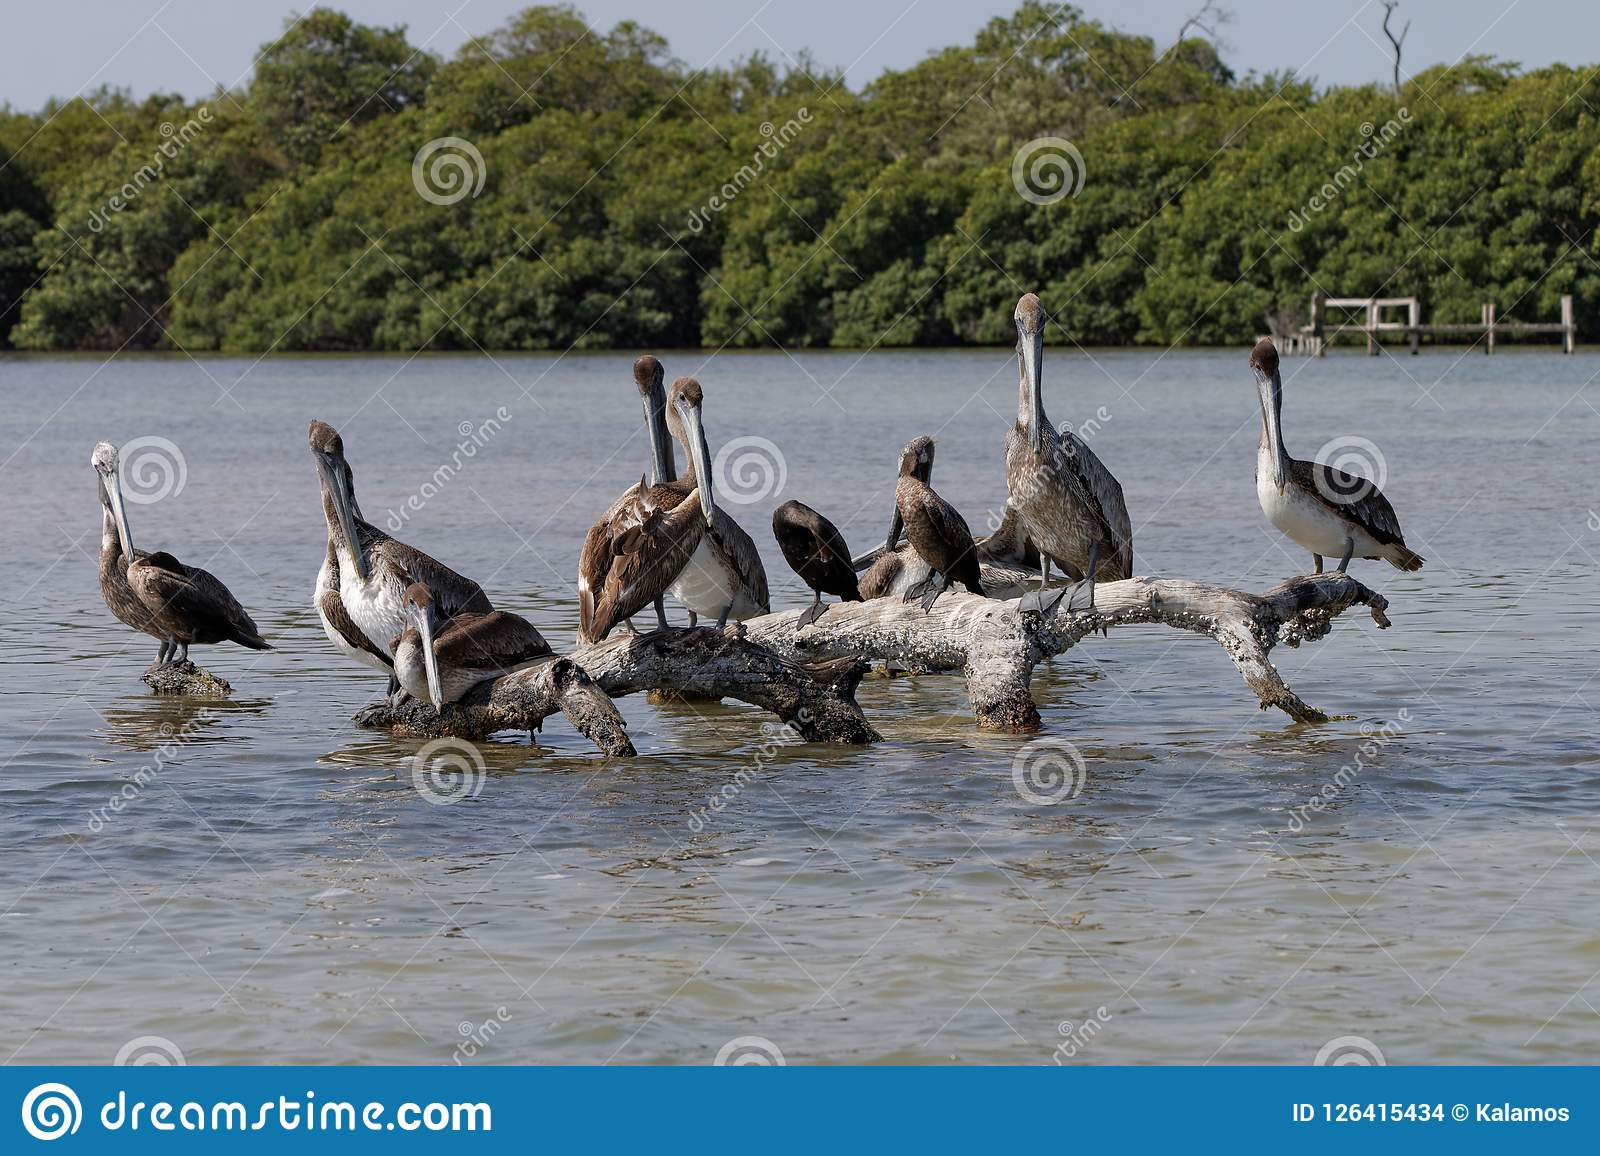 A group of pelicans on a tree